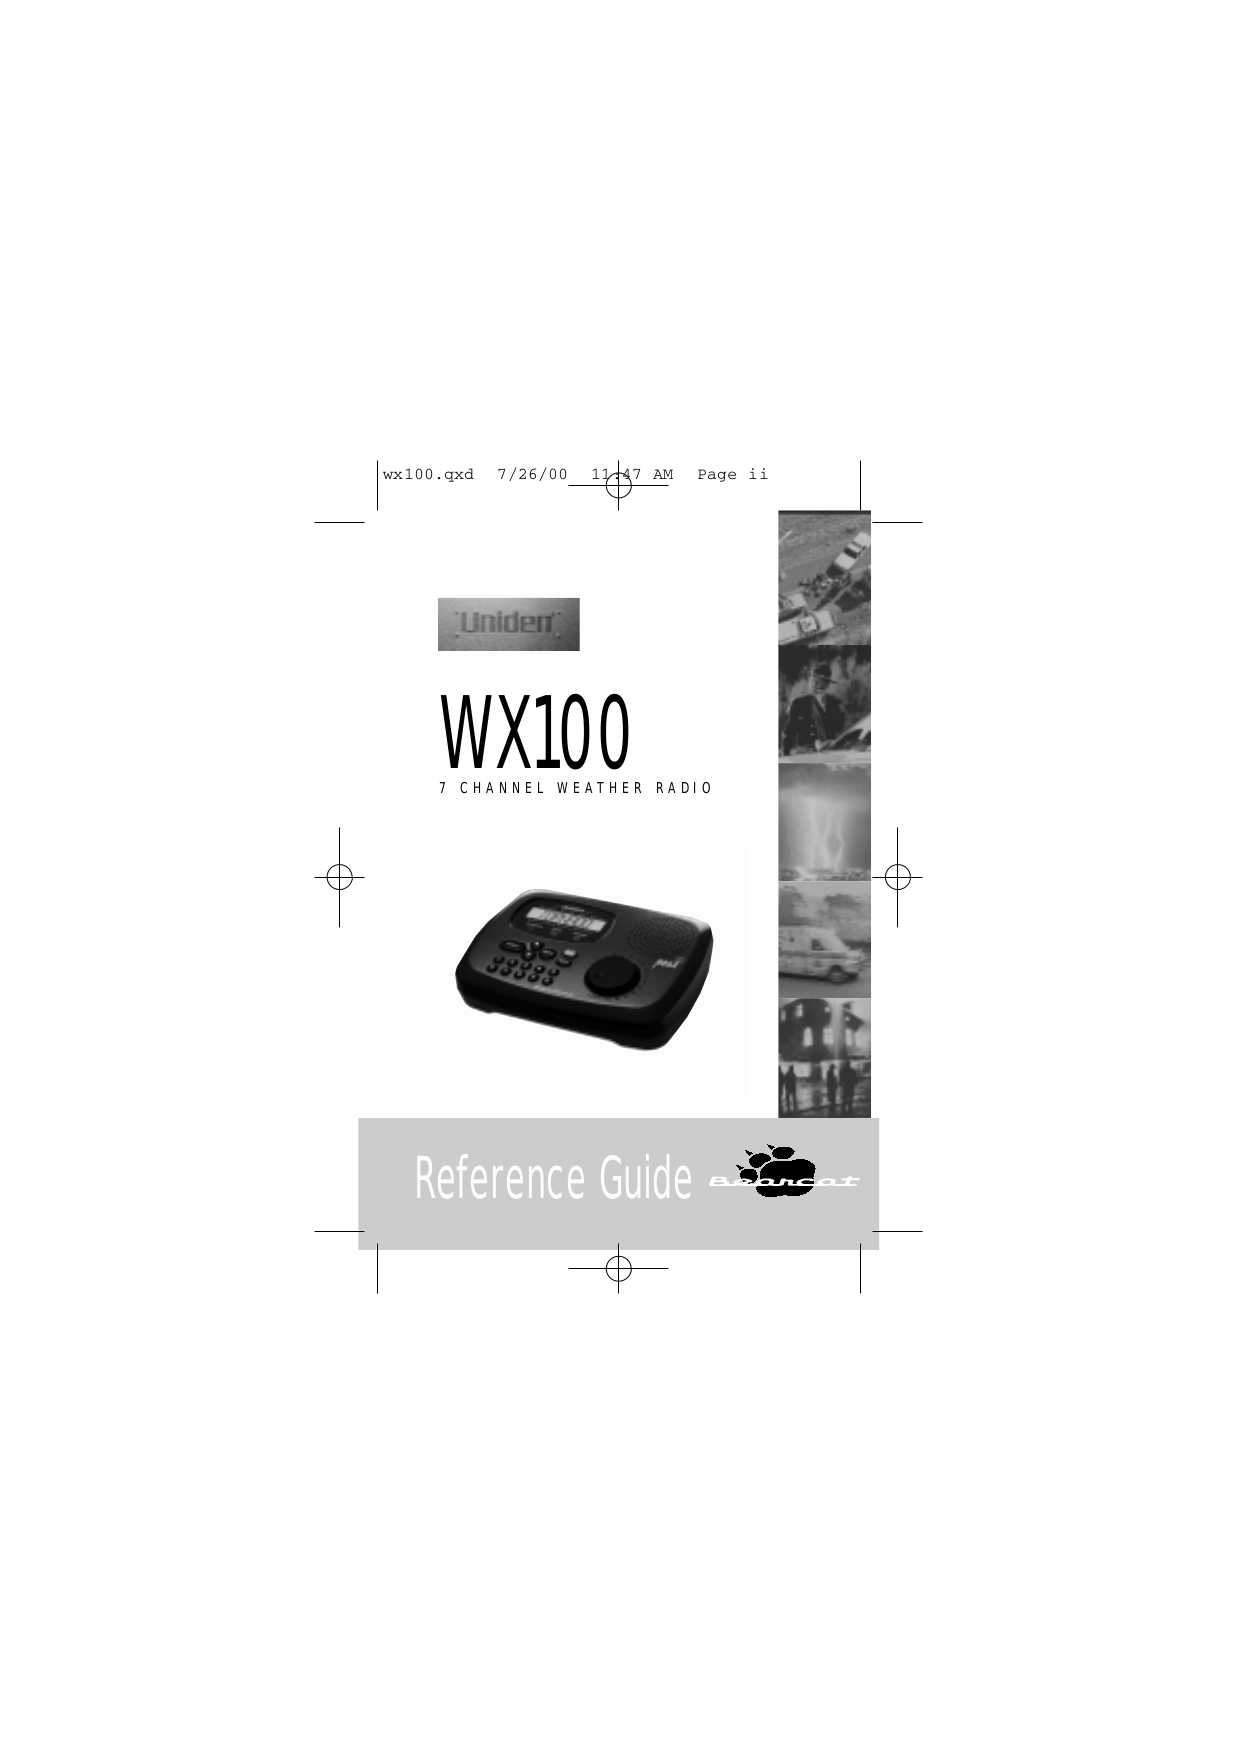 Download free pdf for Uniden WX100 Scanner manual